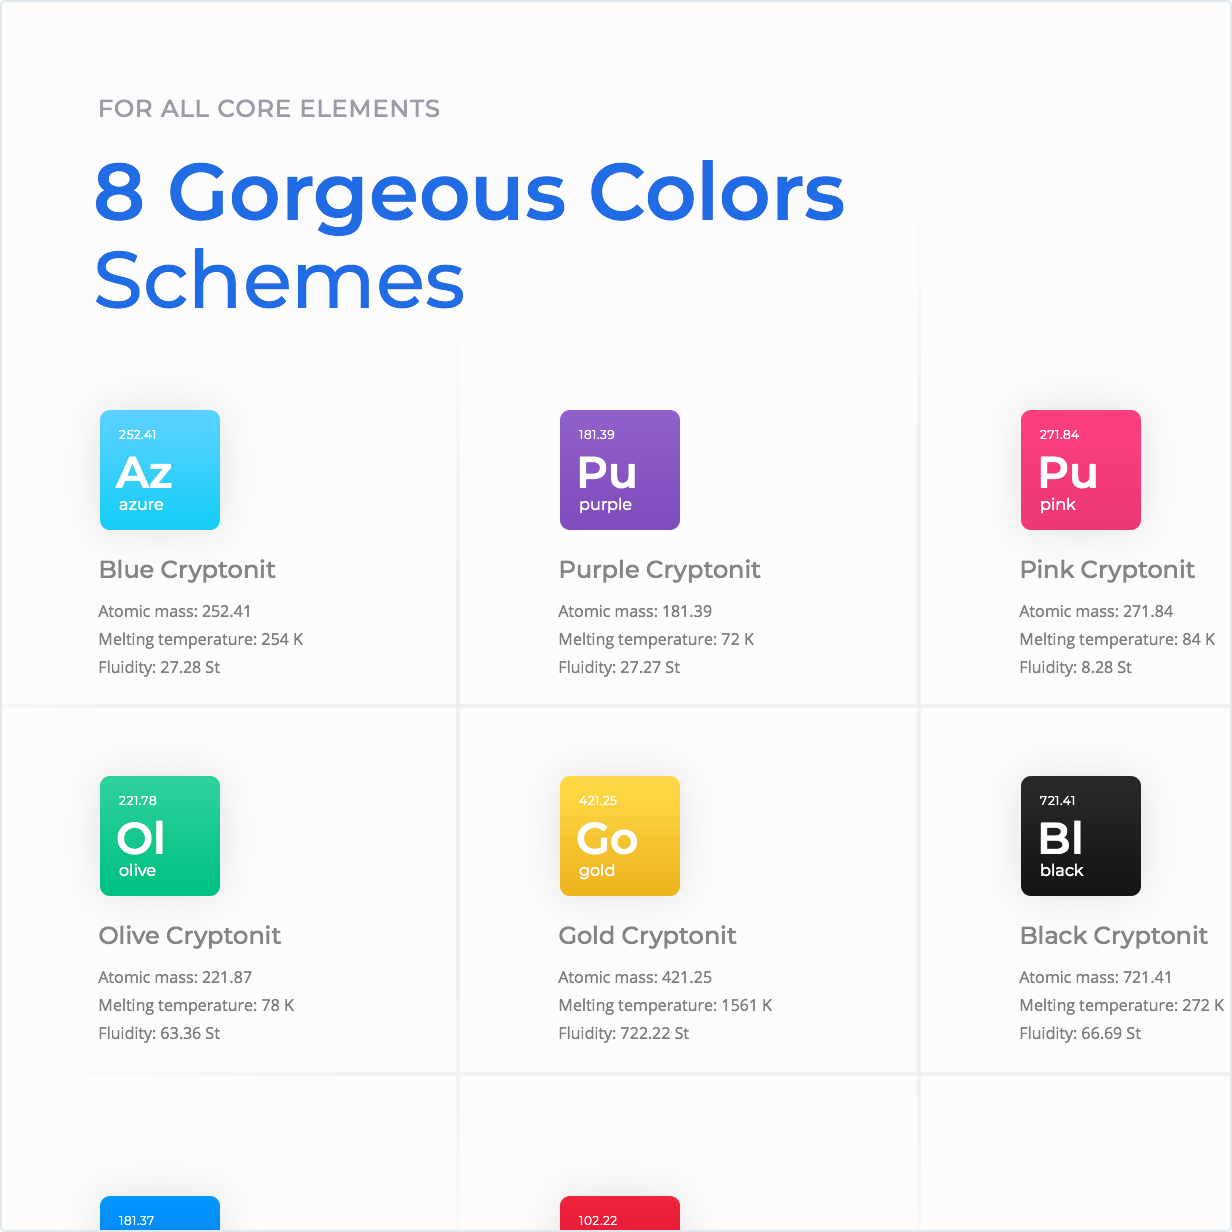 8 Gorgeous colors schemes for all core elements